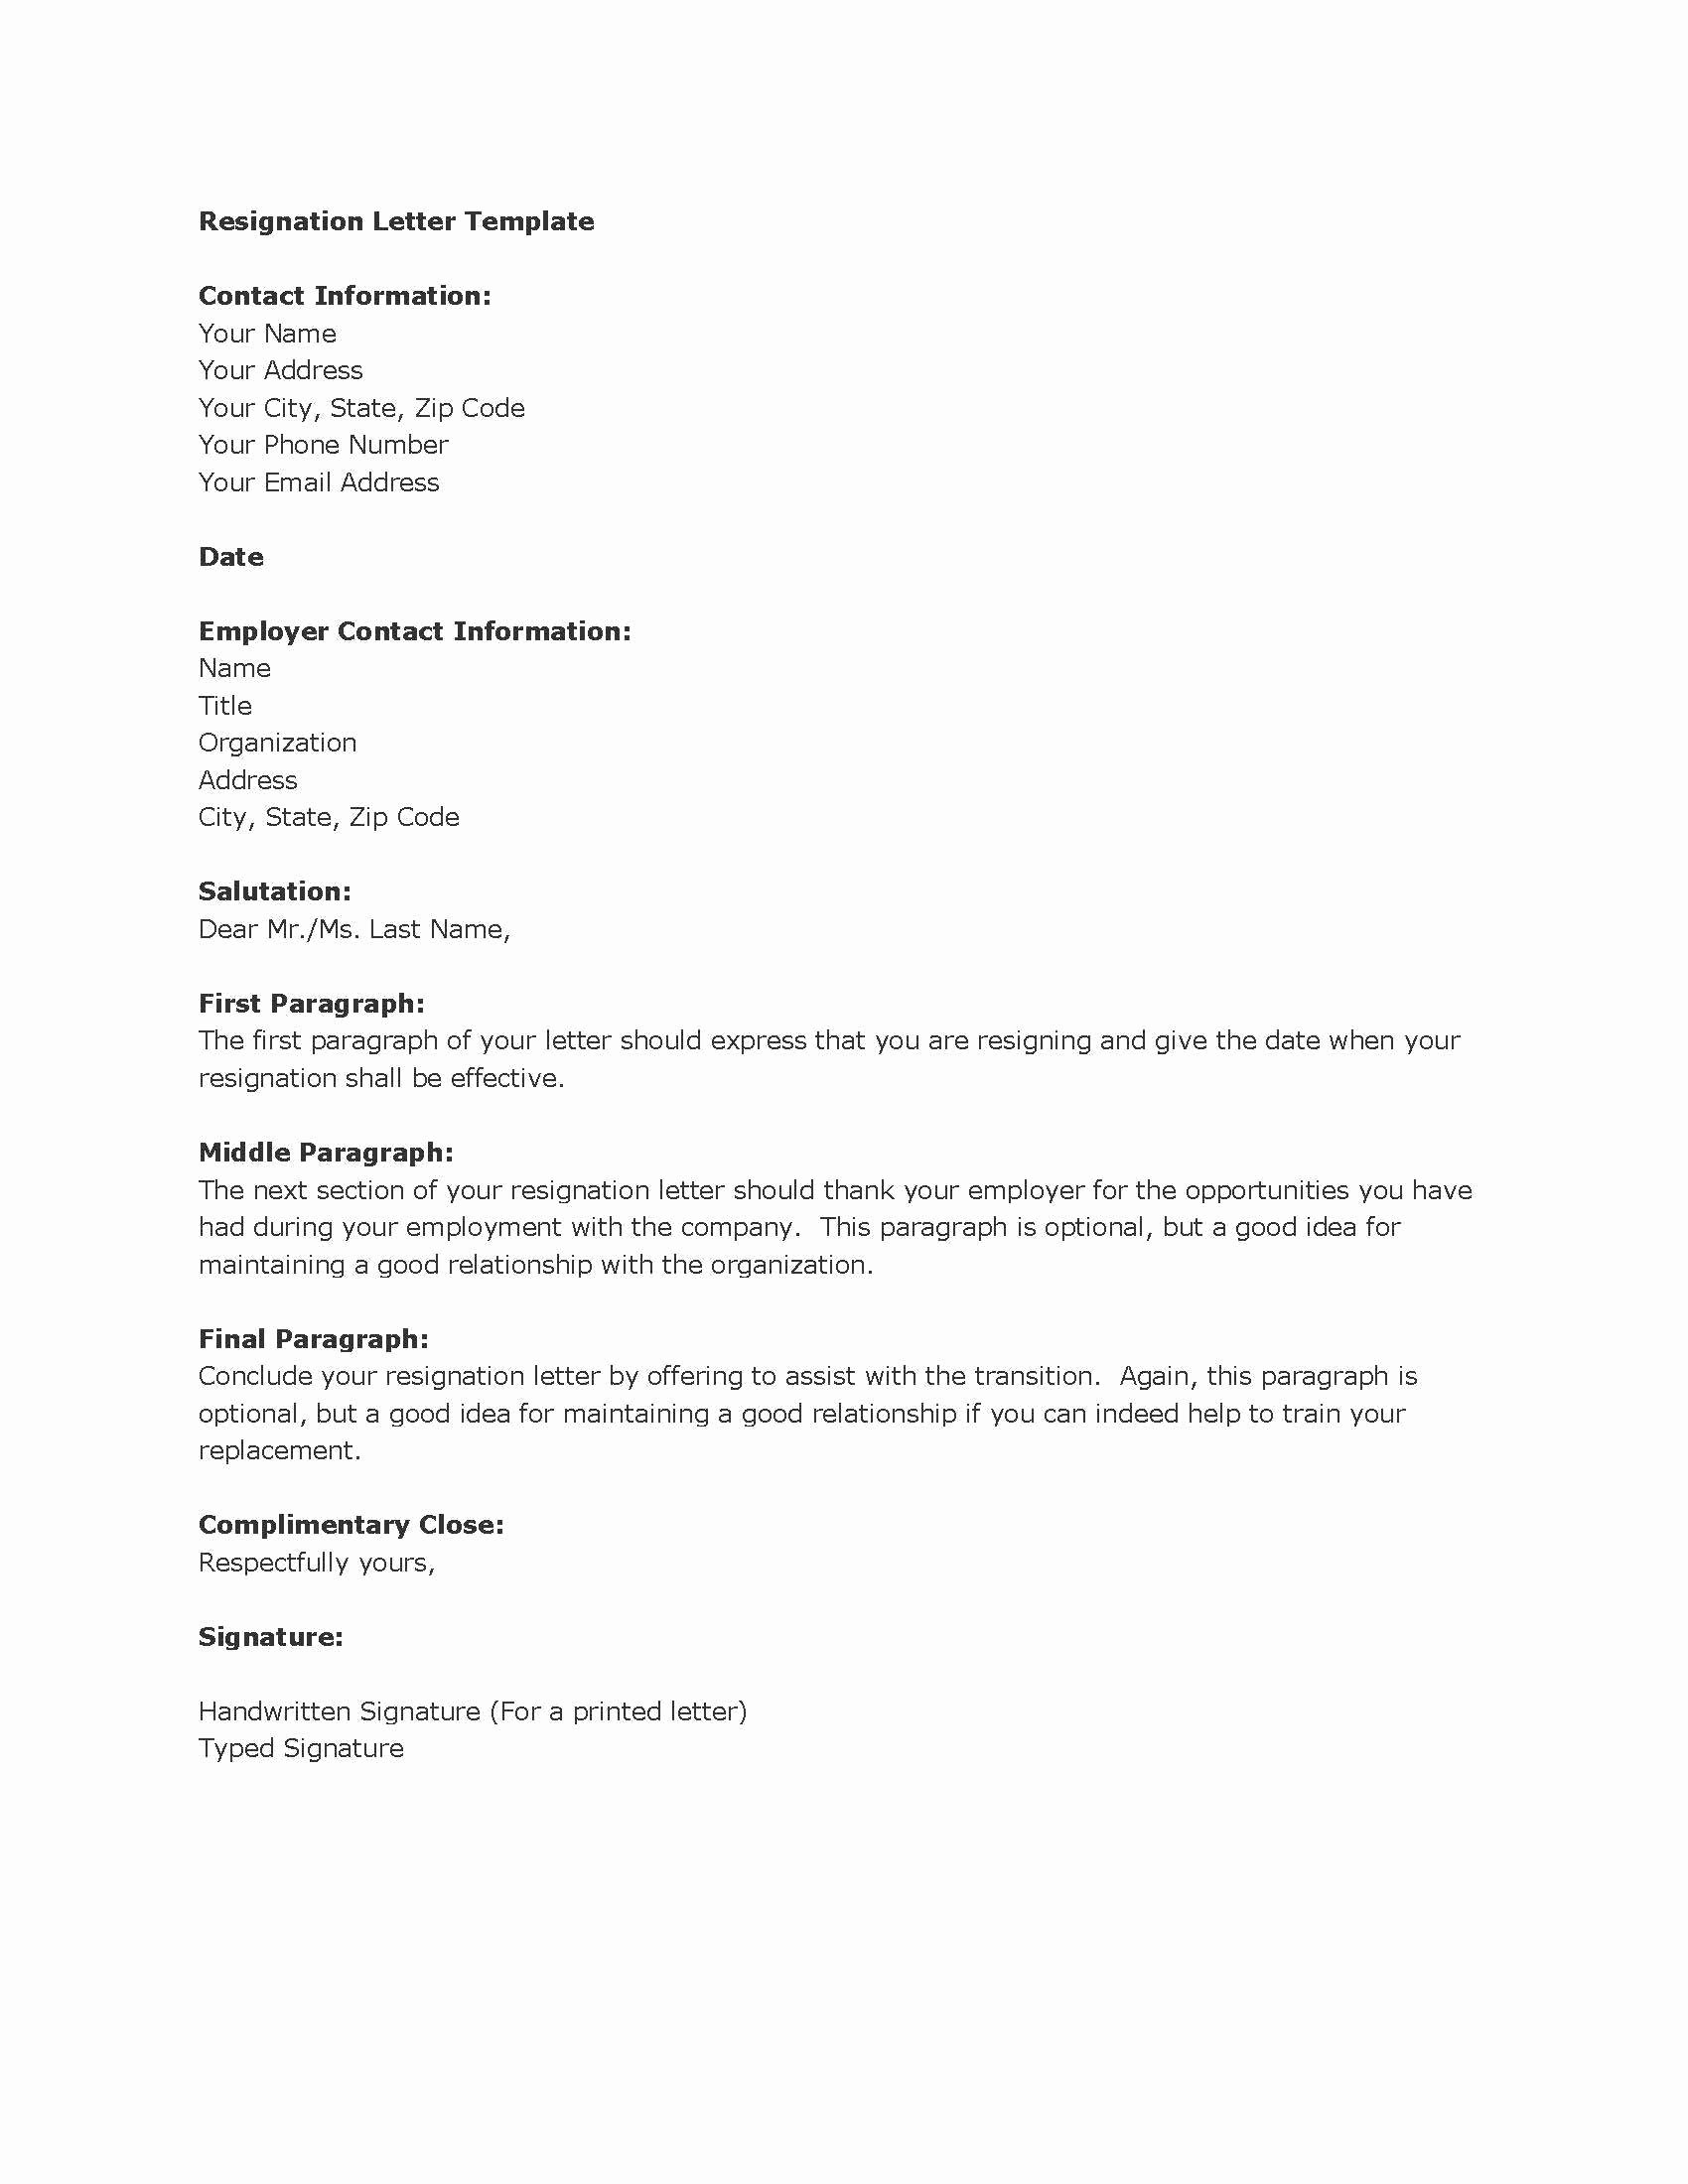 Resignation Letter Template Free Fresh Resignation Letters Download Pdf Doc format